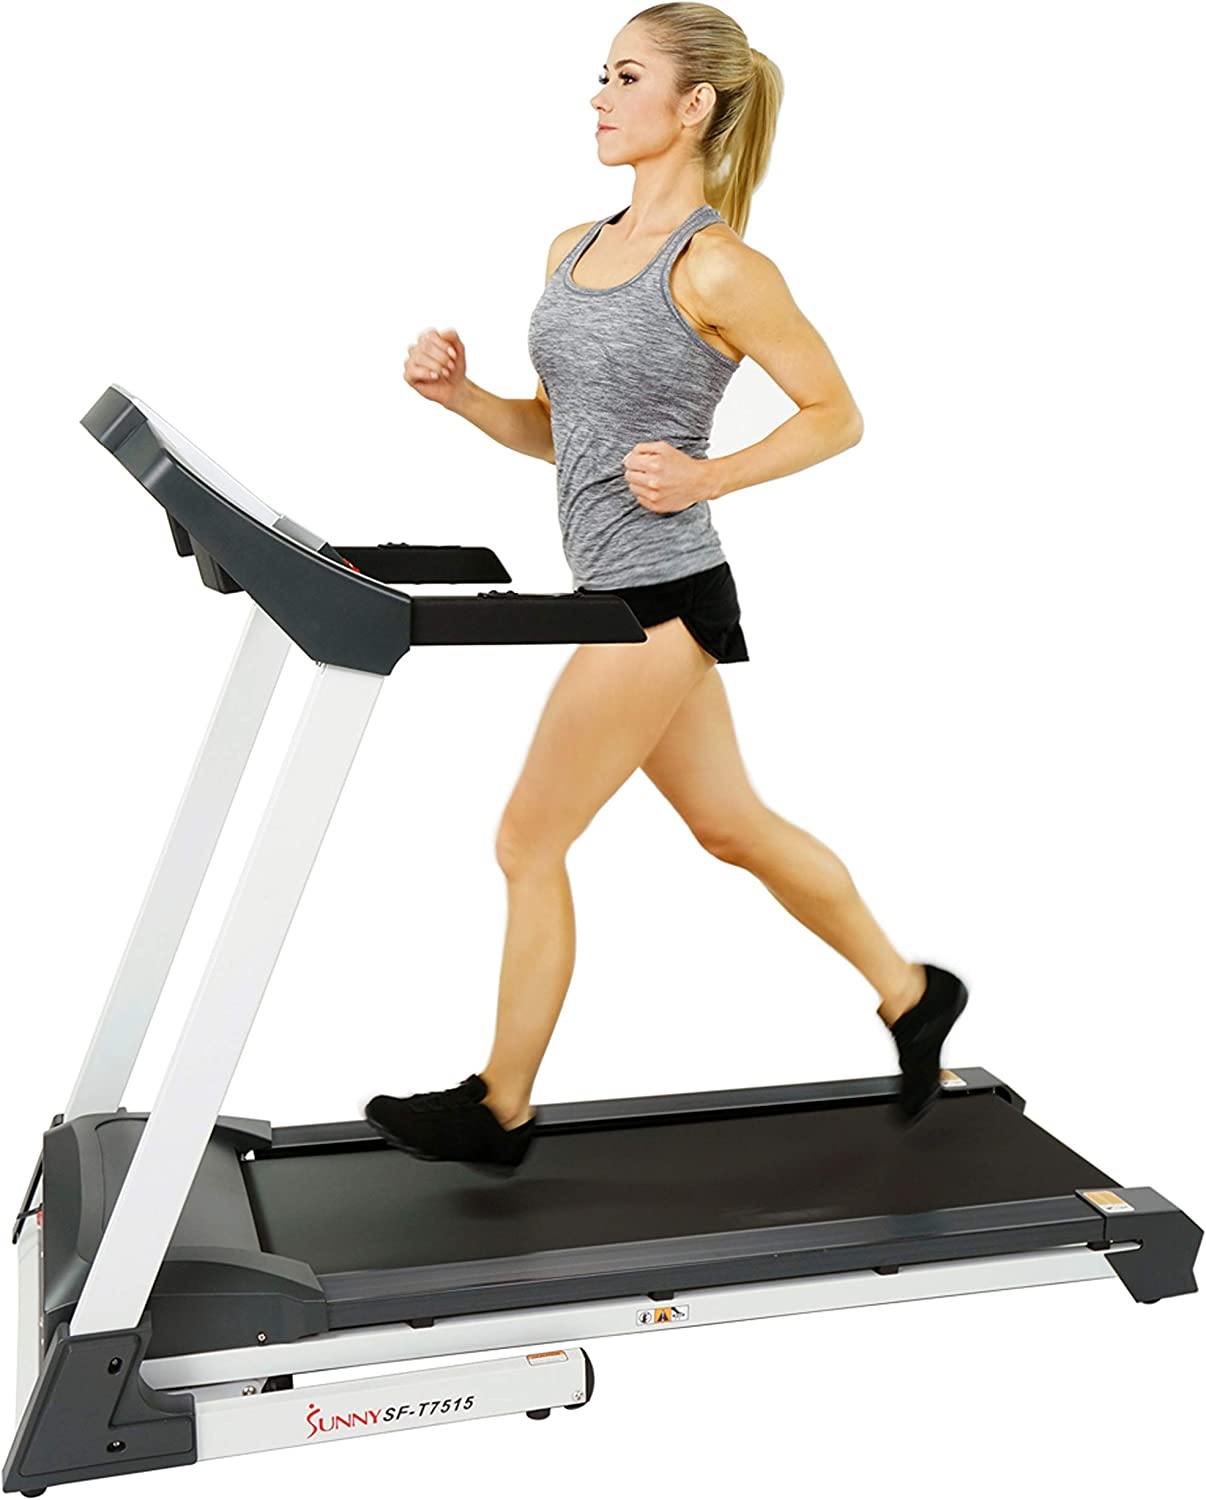 Best incline treadmill: Sunny Health & Fitness SF-T7515 Smart Treadmill